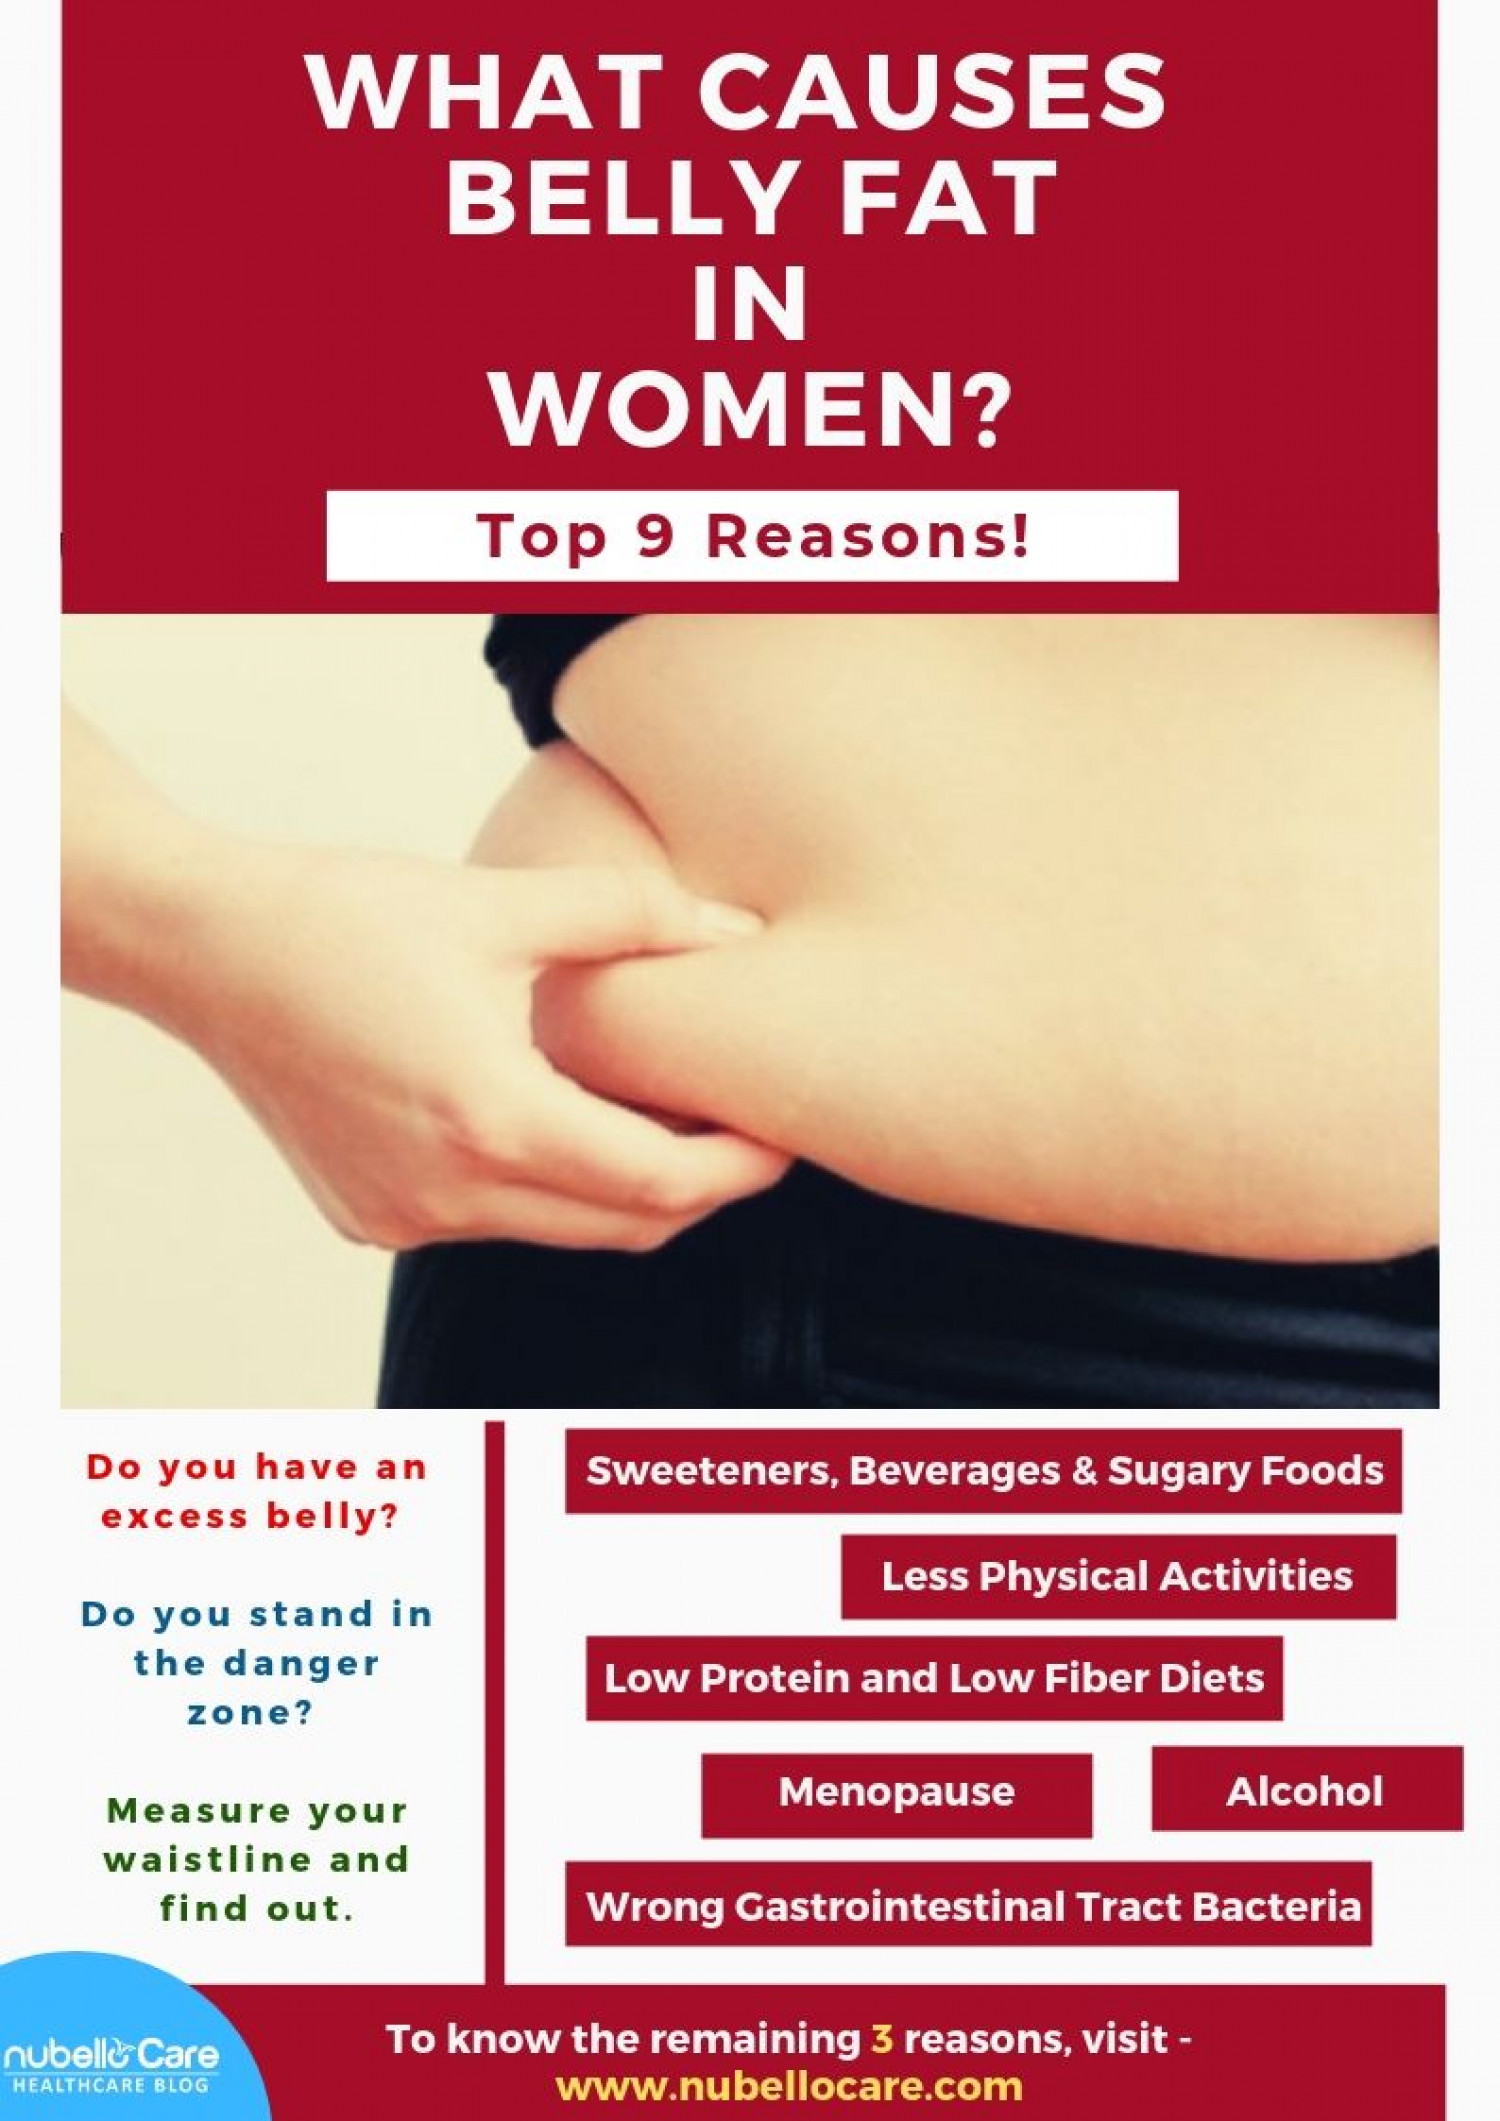 What Causes Belly Fat in Women? Infographic